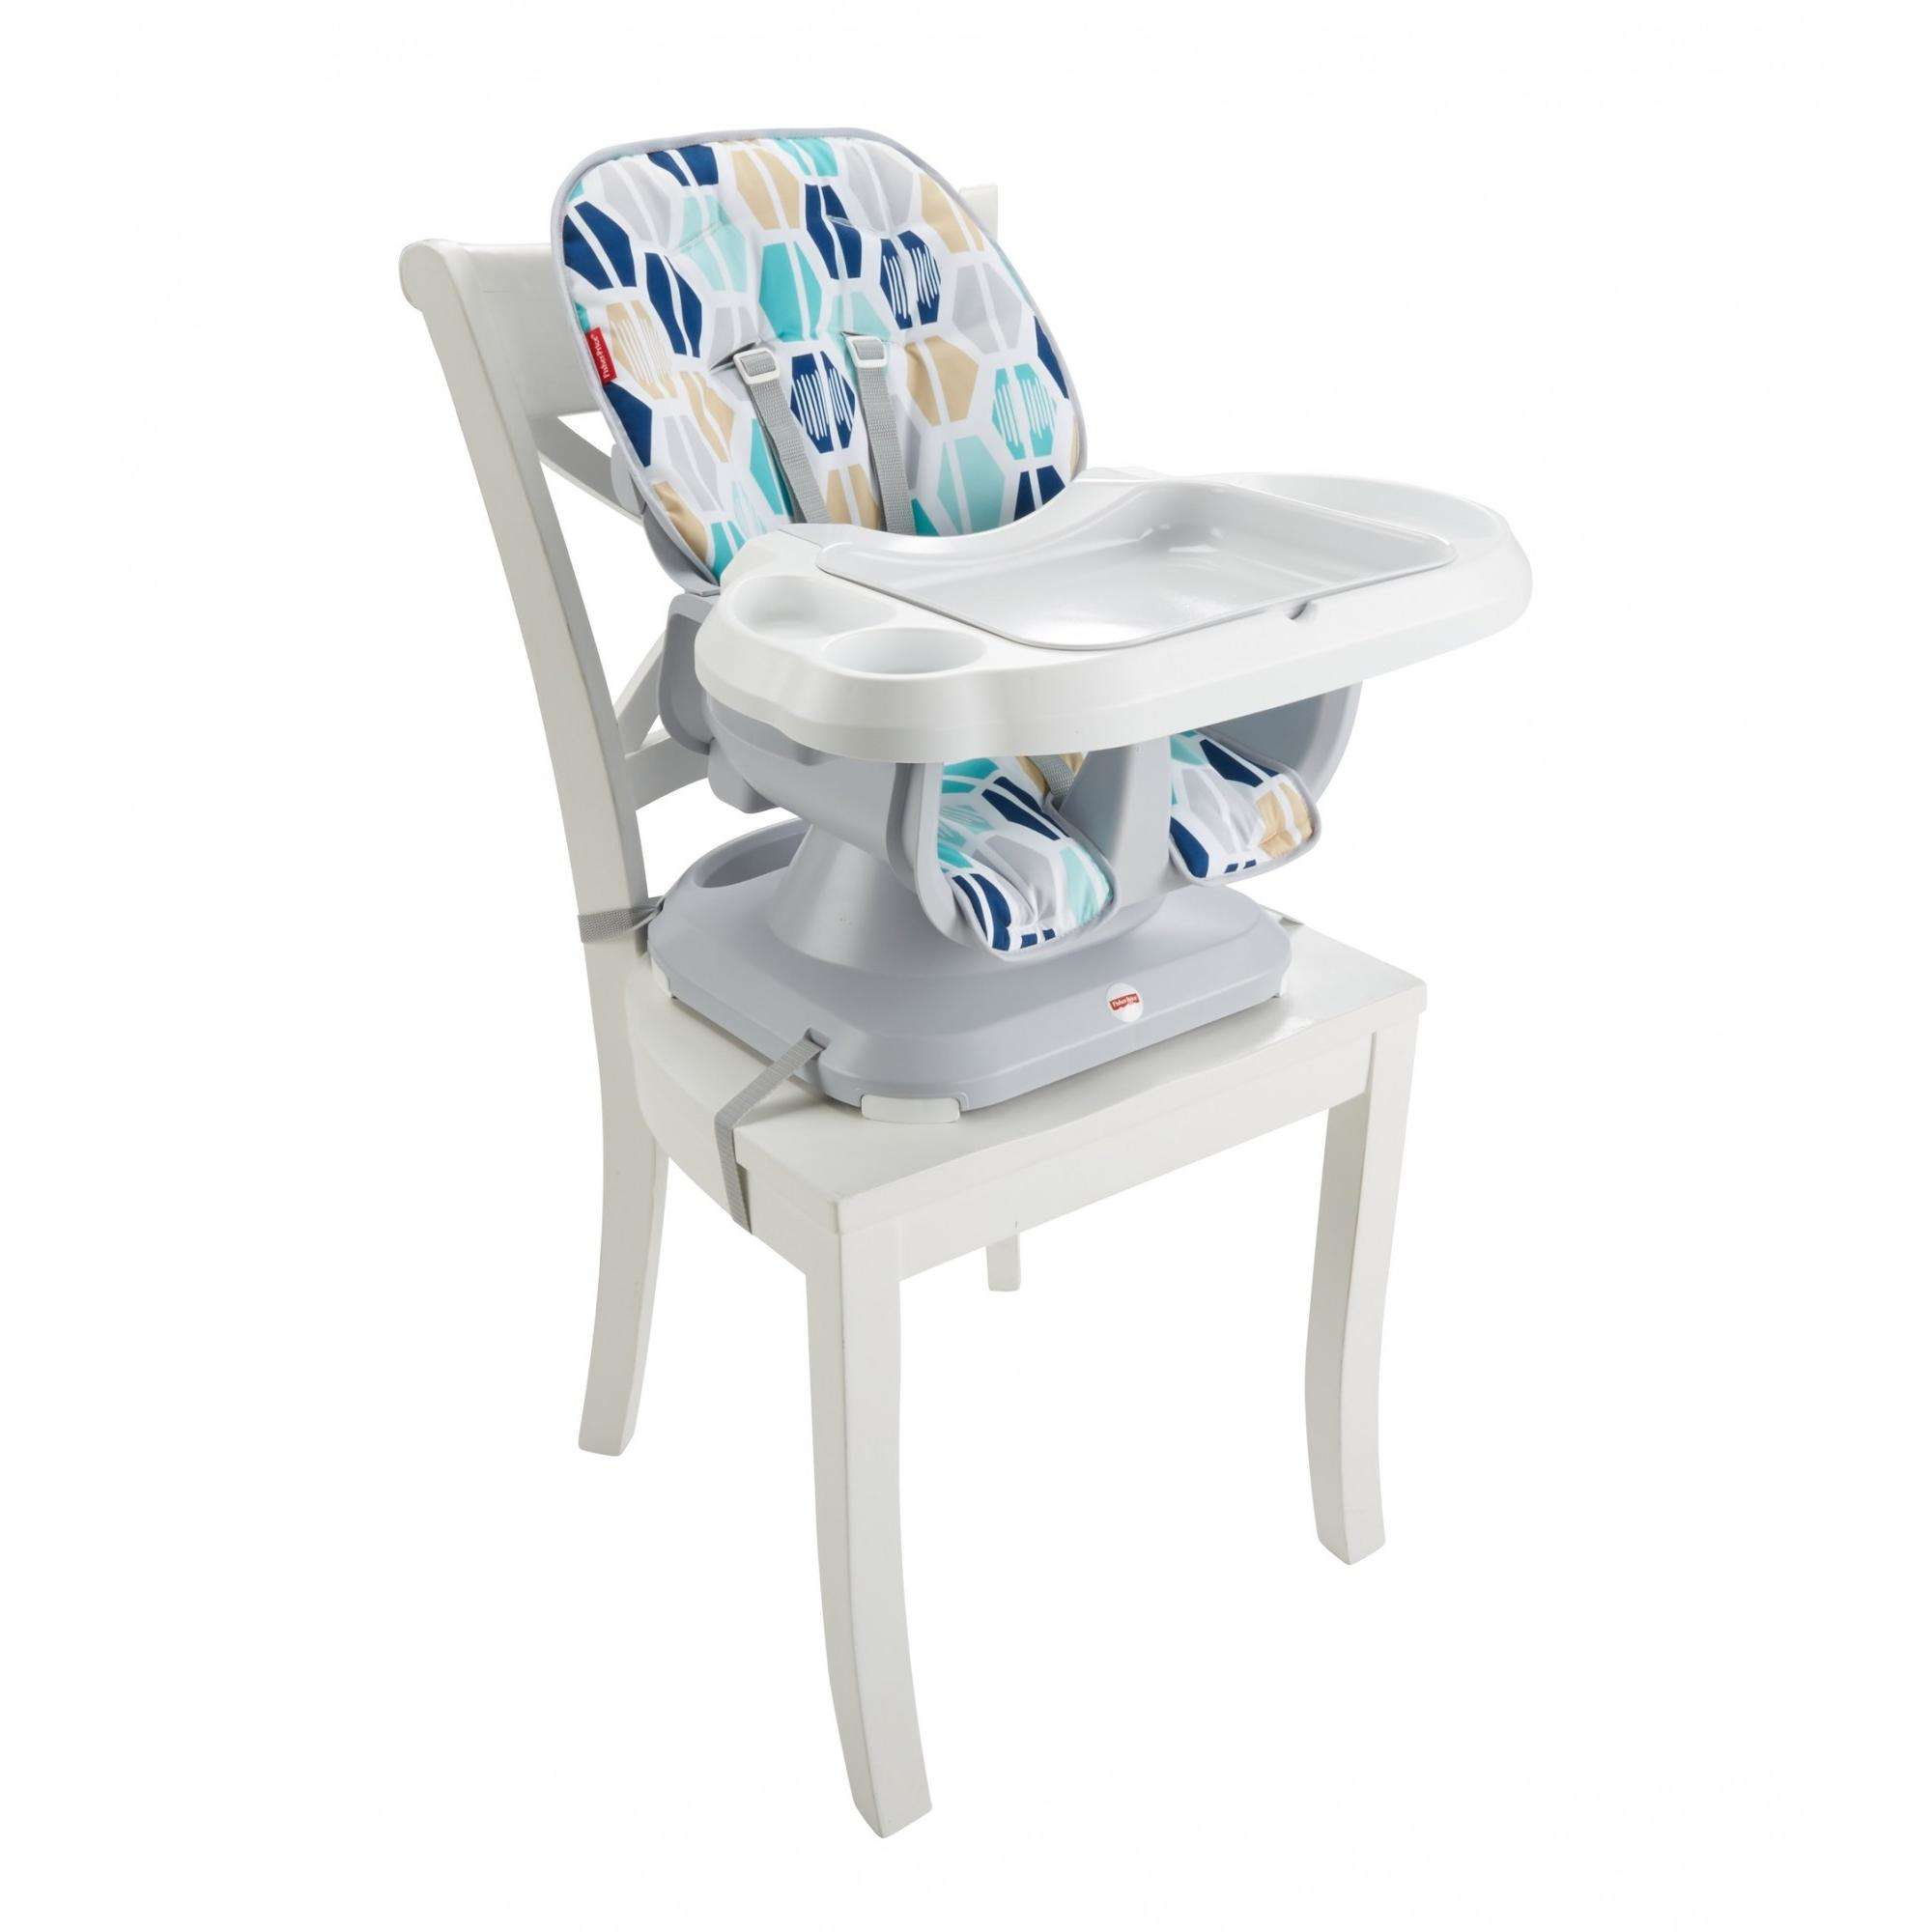 Fisher Price SpaceSaver High Chair by Fisher-Price